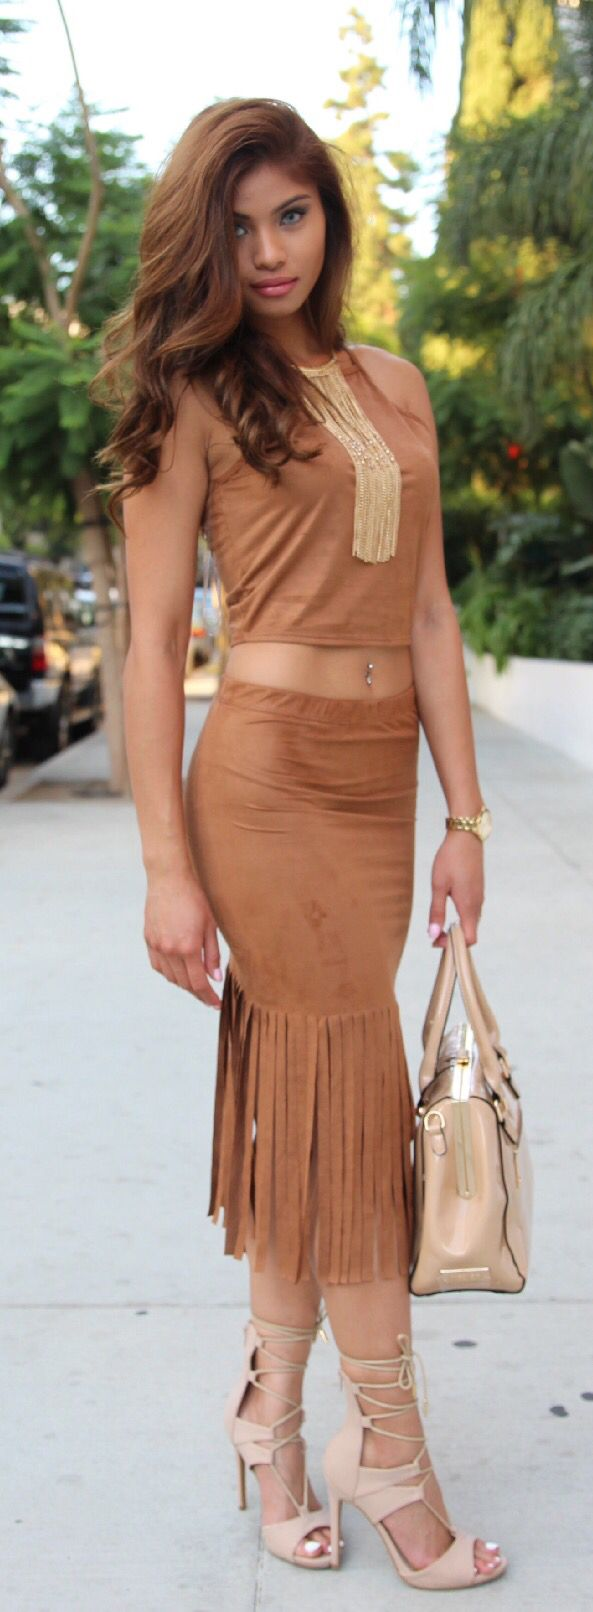 This Pocahontas inspired two piece is great for a night out, so hot!!!!!!